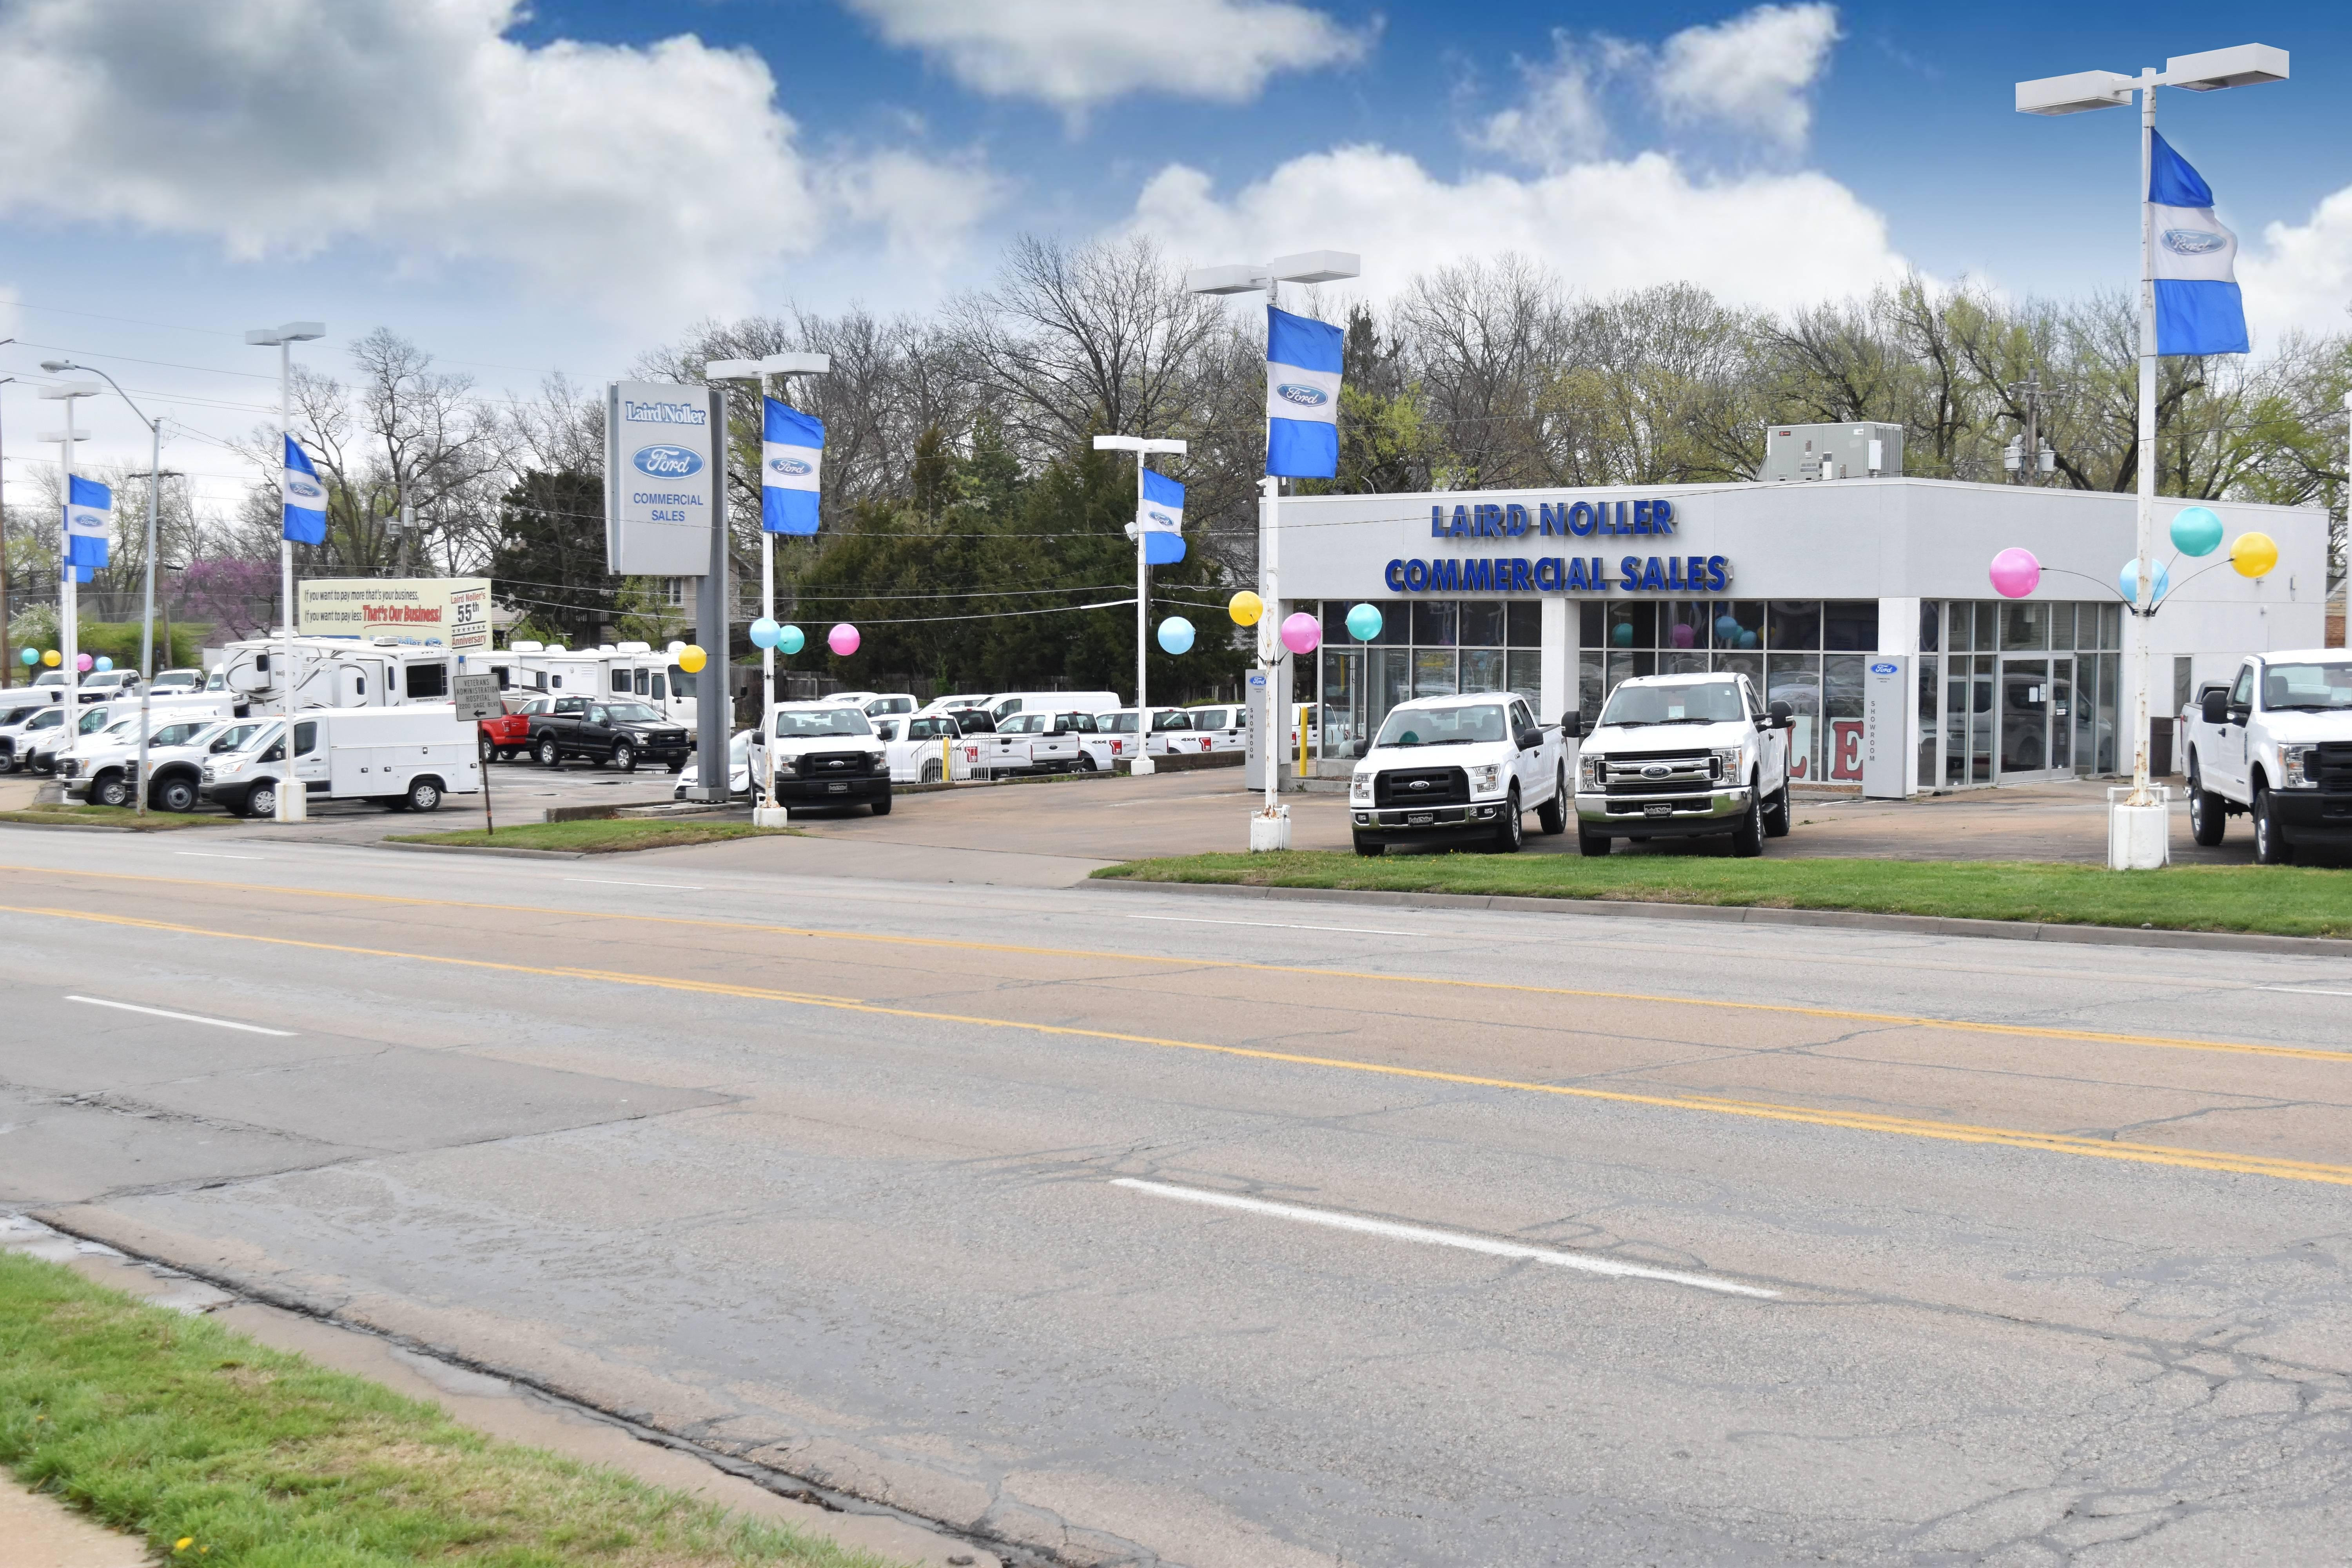 Laird Noller Ford Commercial and Fleet Kansas